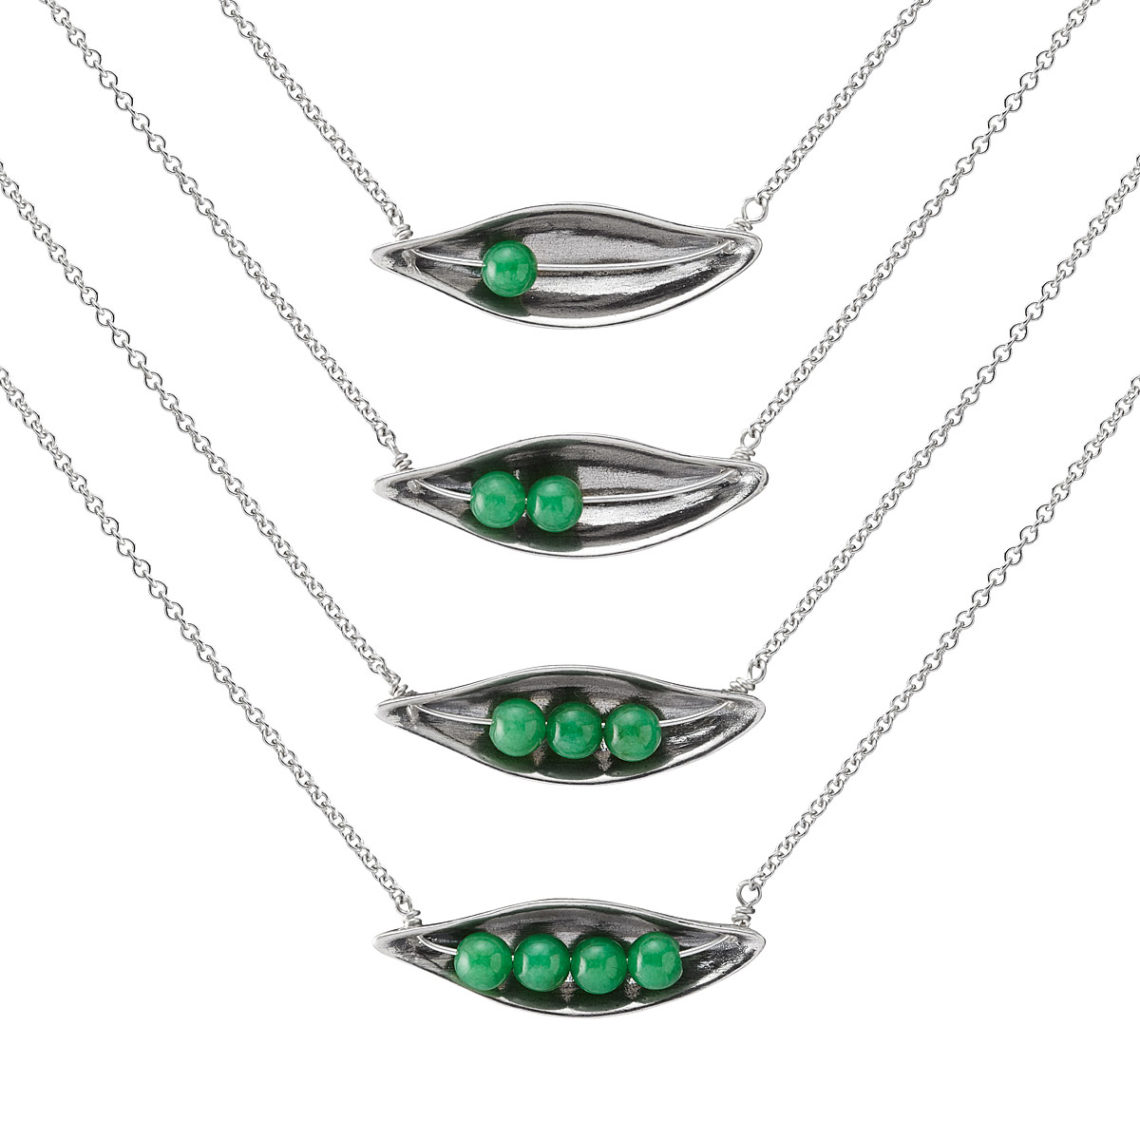 peas in a pod necklace, Uncommongoods, Mother's Day gift ideas